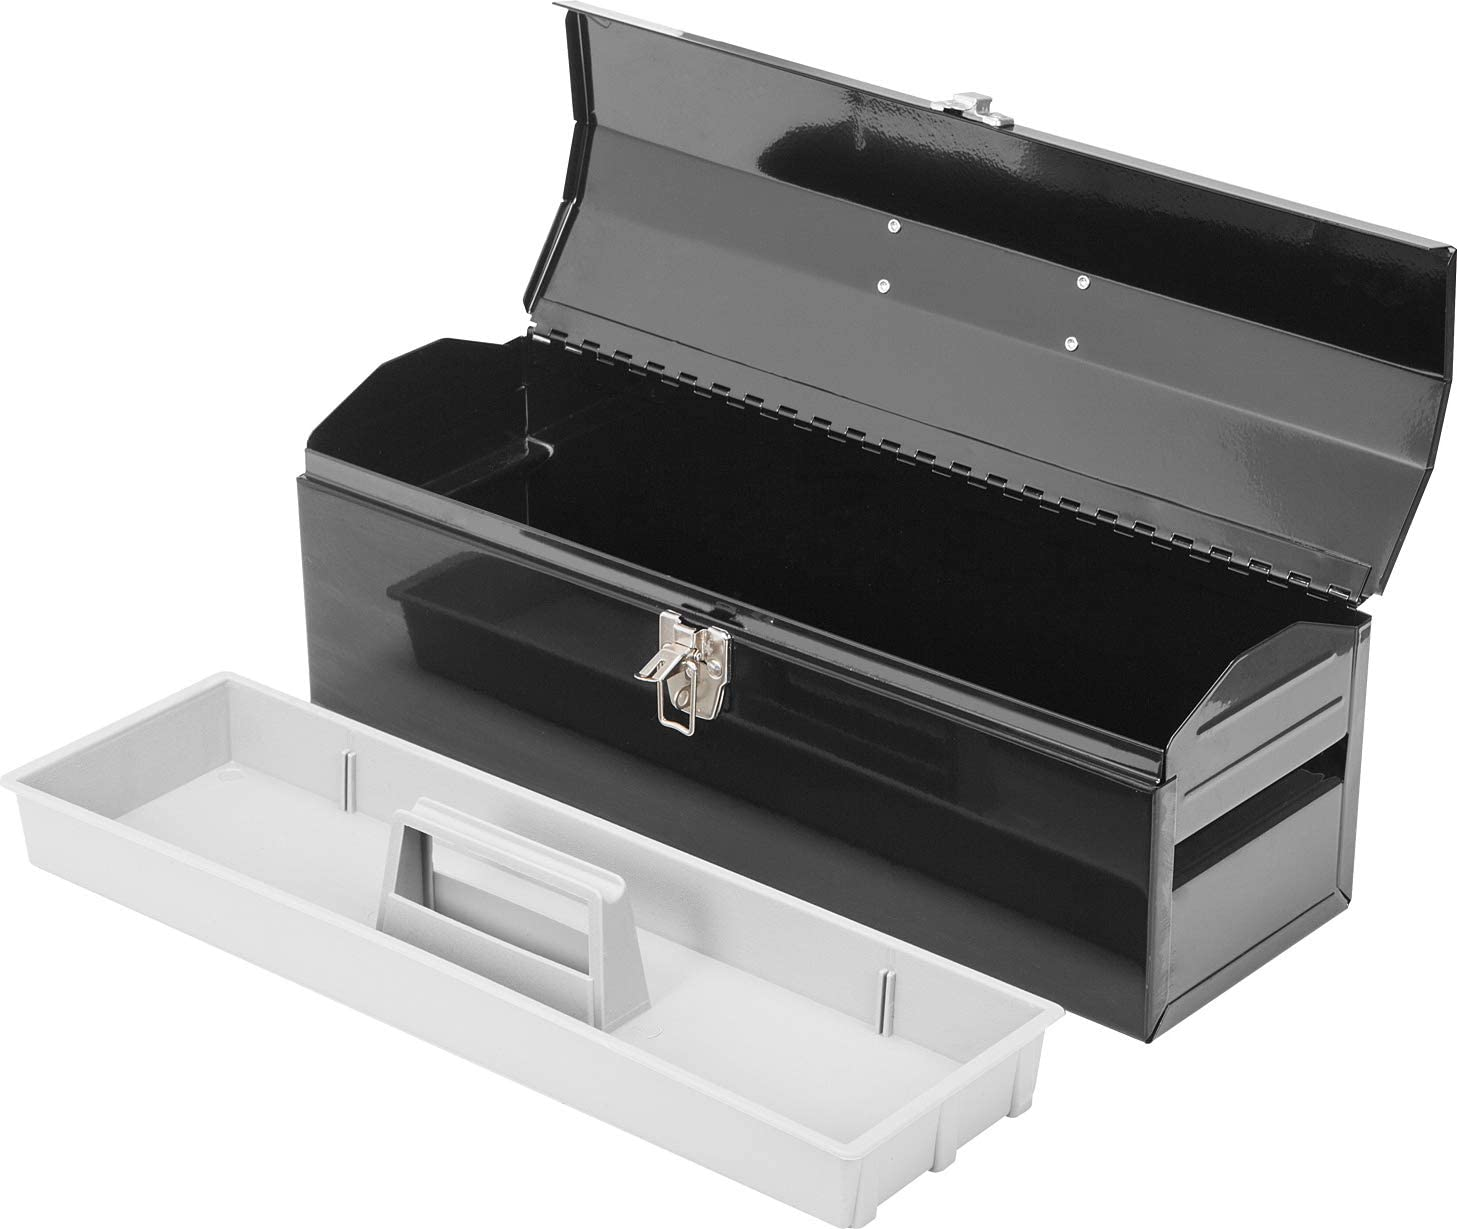 Black Torin ATB101B 19 Hip Roof Style Portable Steel Tool Box with Metal Latch Closure and Removable Storage Tray